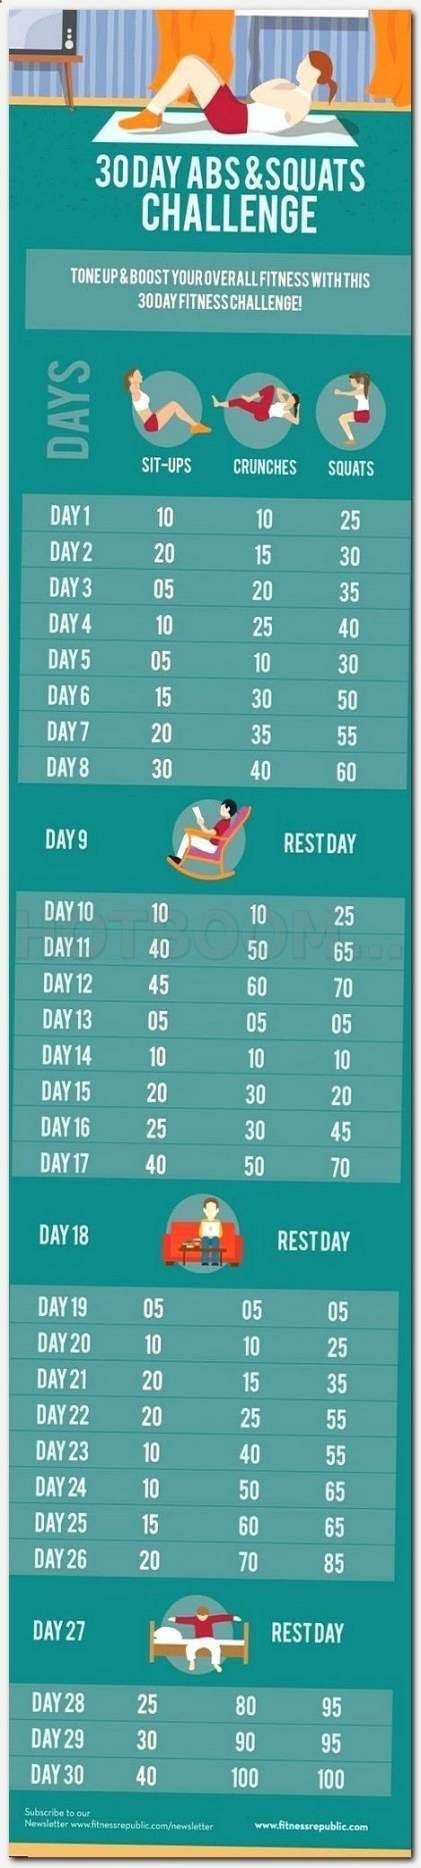 Fitness motivacin before and after squats healthy 63+ ideas #fitness